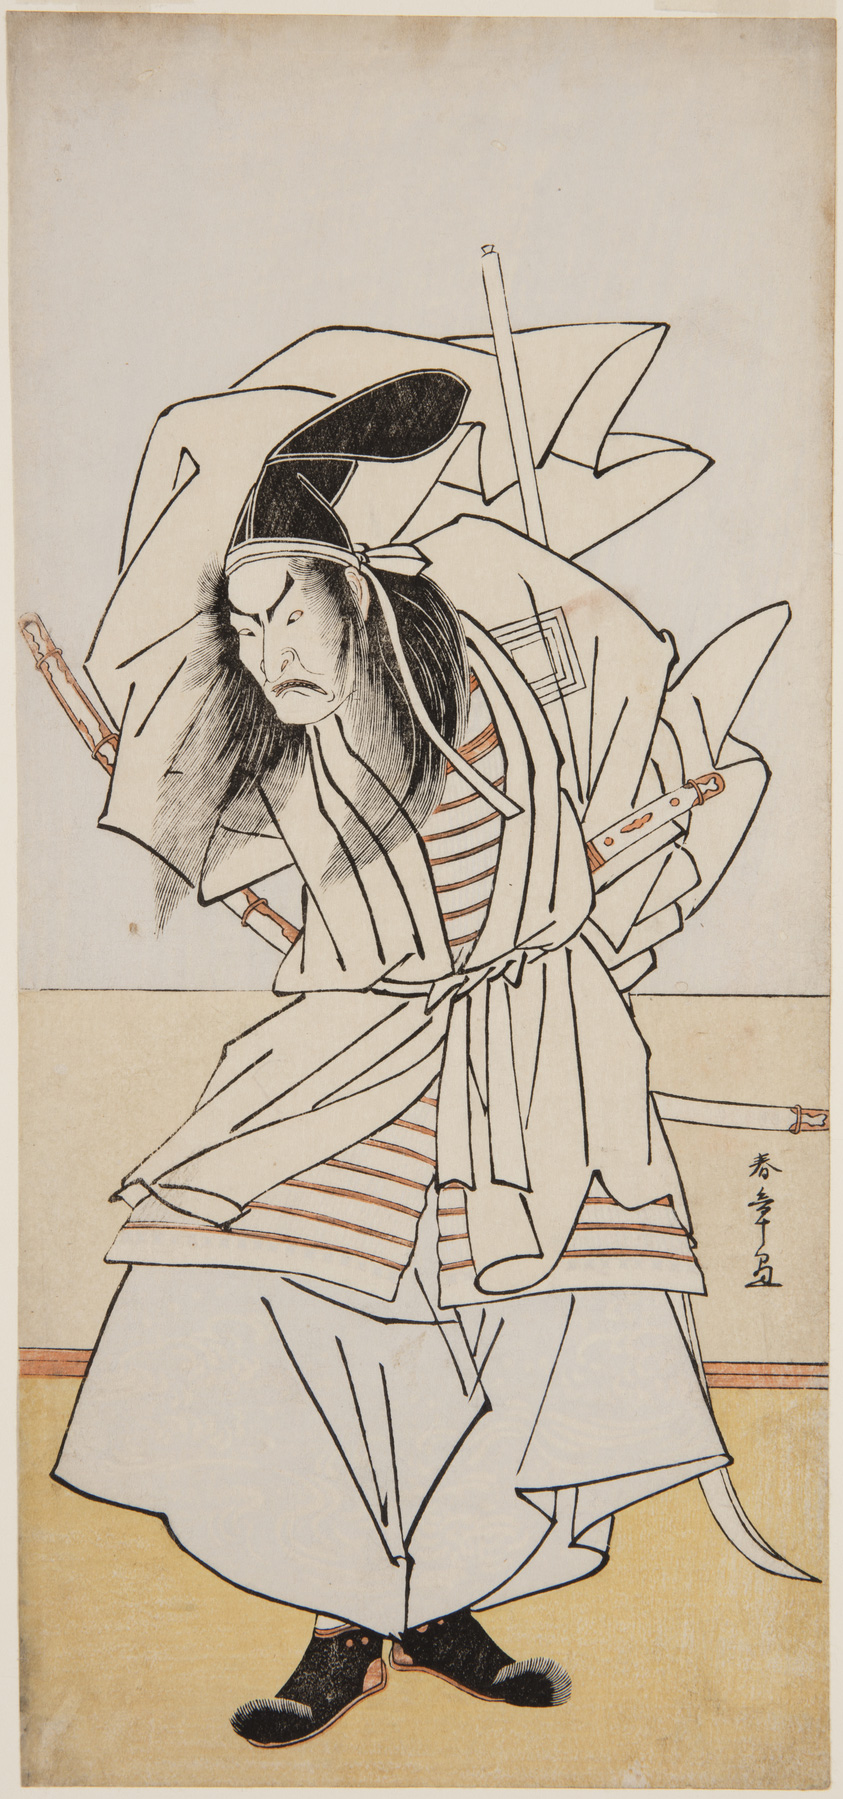 A Japanese print of an actor posed legs bent, looking down. He is wearing samurai traditional robes with his swords and staff in the back of his belt.